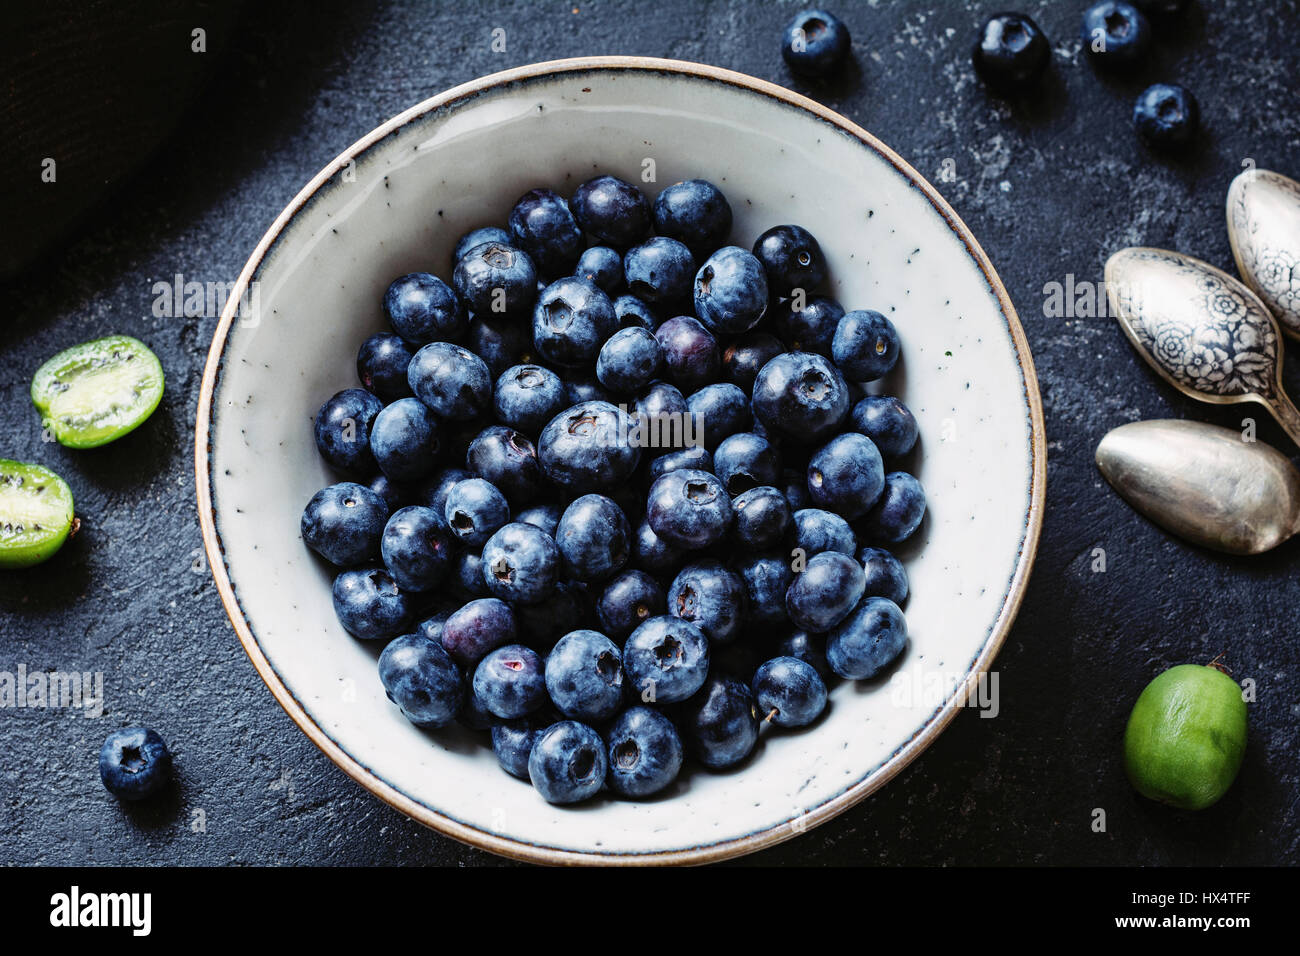 Top view of fresh blueberries in white ceramic bowl on dark stone table. Closeup - Stock Image